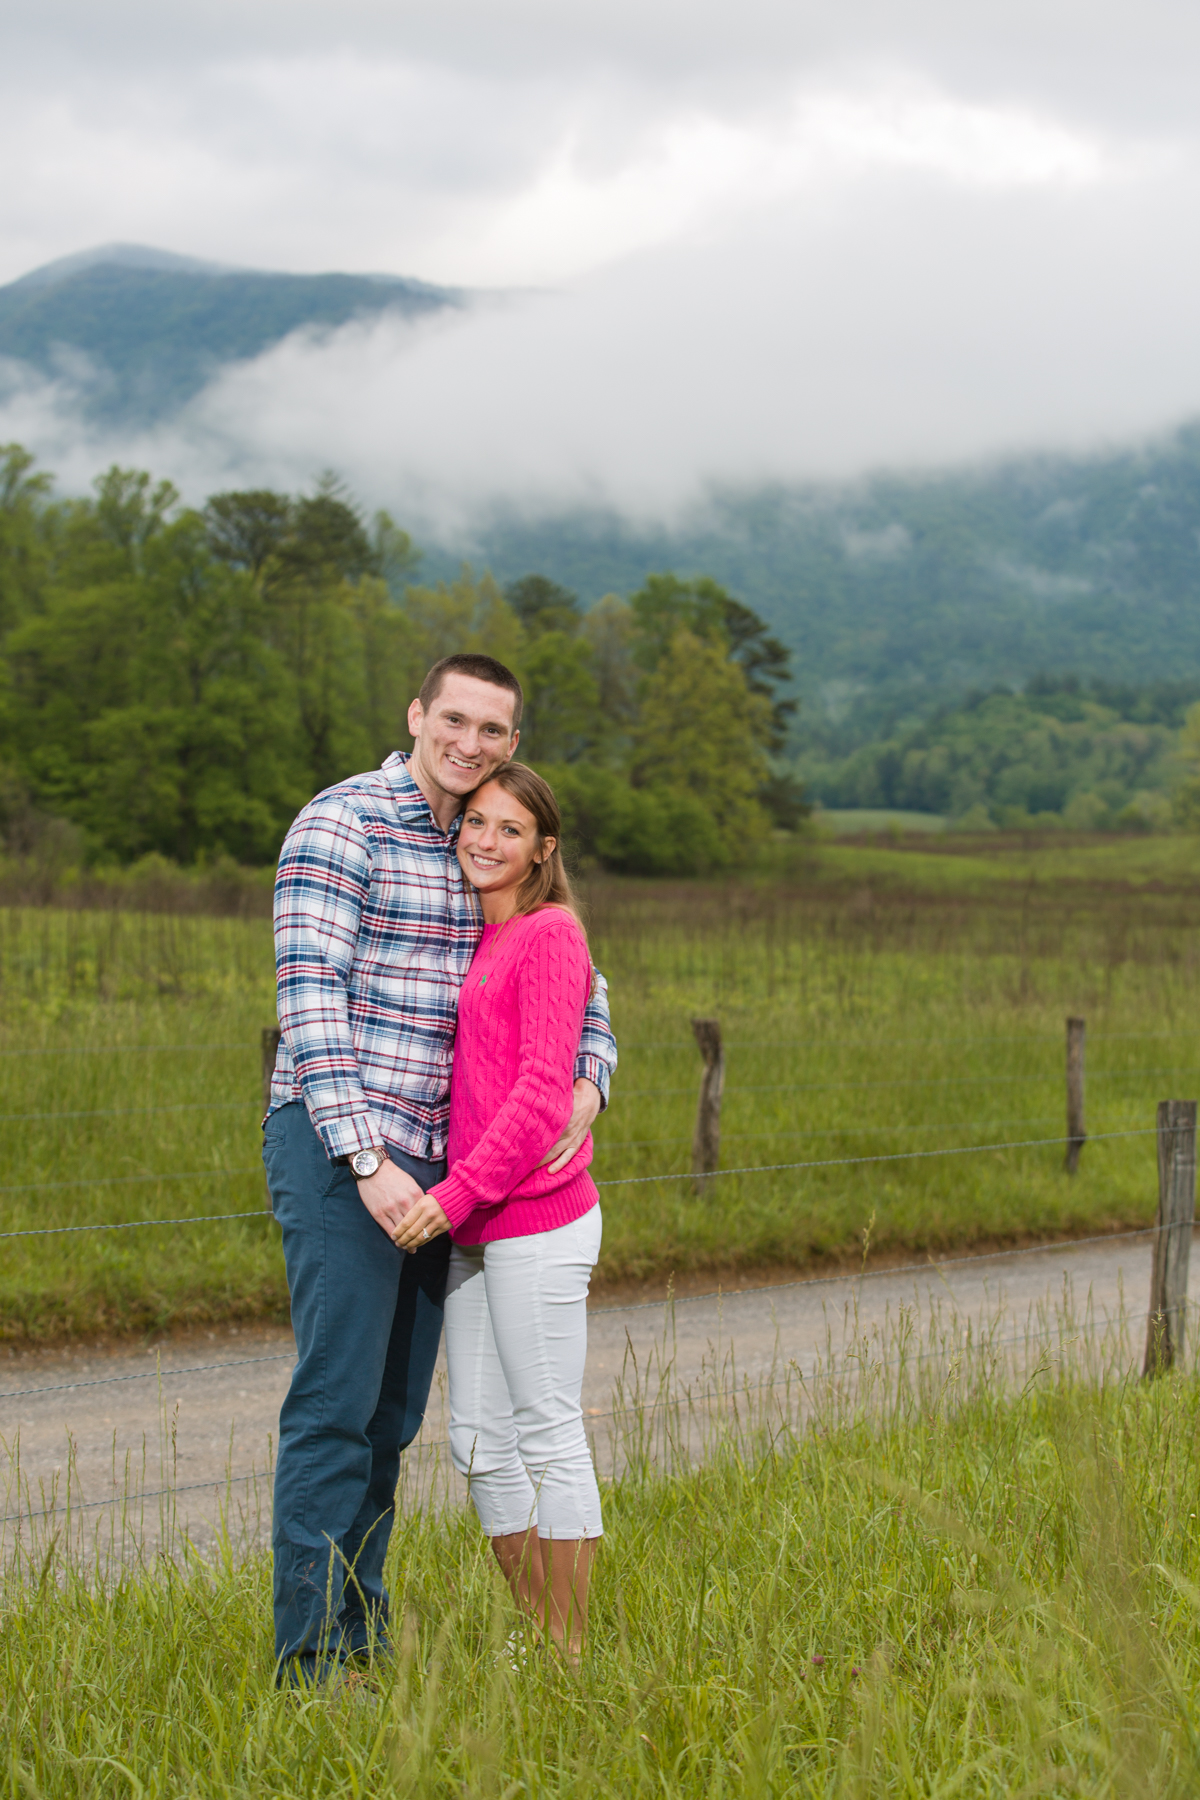 Cades-Cove-marriage-proposal-02